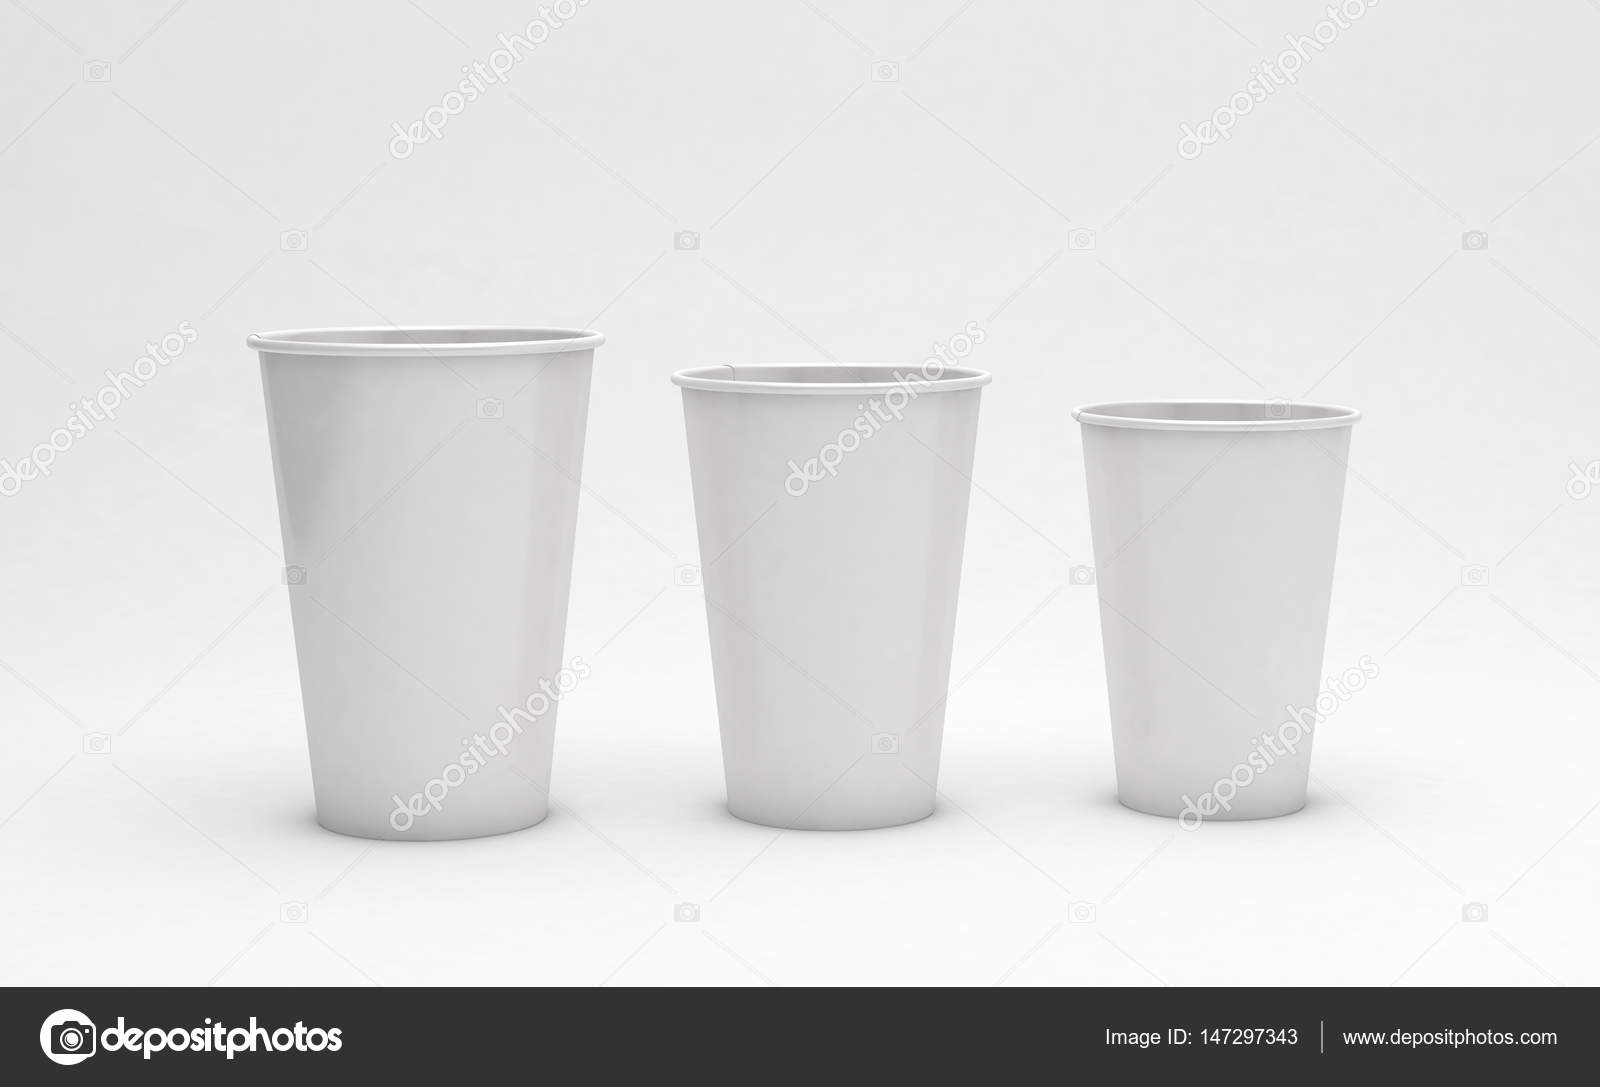 aec3ae61338 Cardboard coffee cups on light background, ecology concept. 3d  illustration– stock image